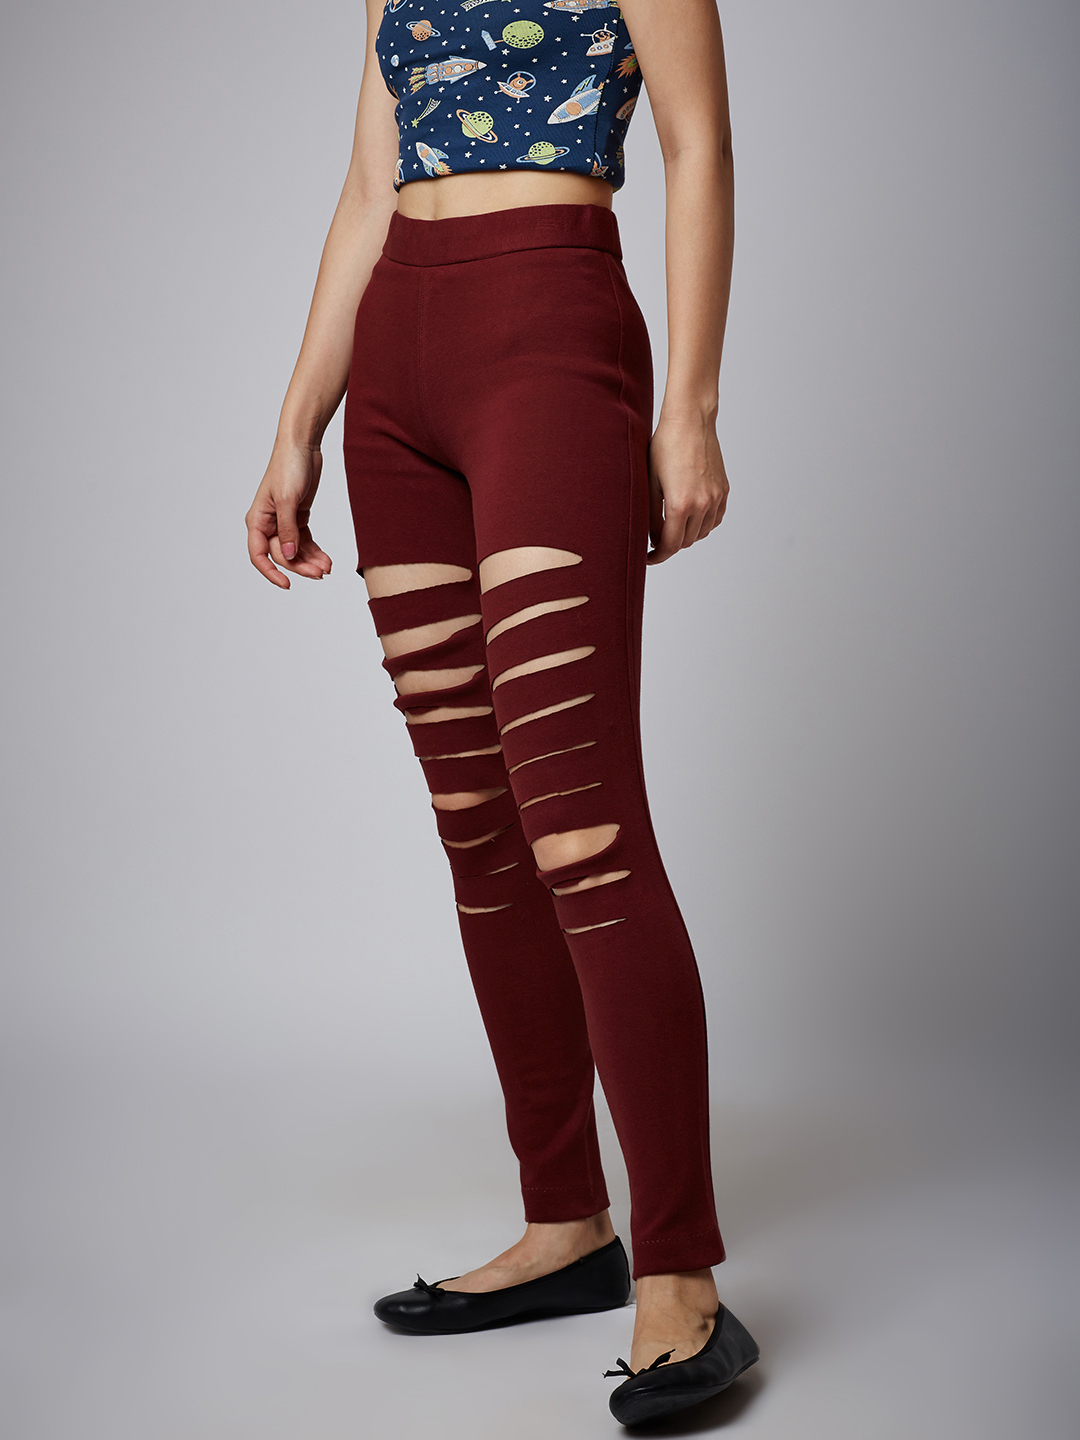 76f3cb8f4ff94 Burgundy Ripped Jeggings – Online Shop For Women Skirts Jeans